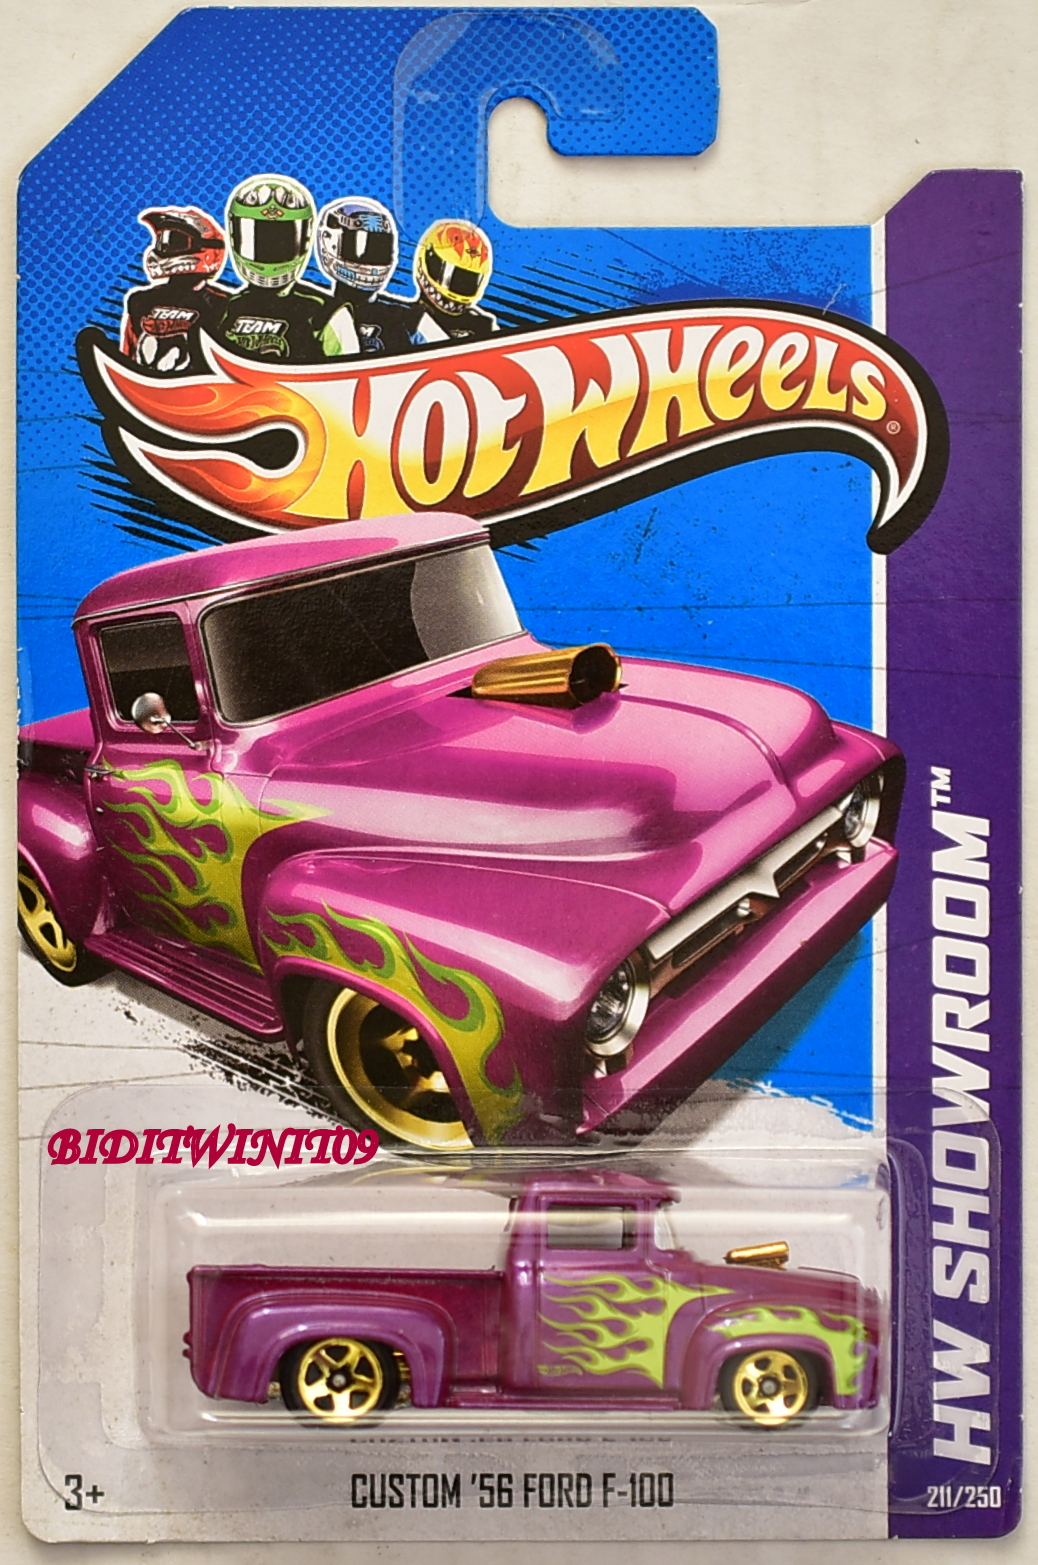 HOT WHEELS 2013 HEAT FLEET - HW SHOWROOM CUSTOM '56 FORD F-100 PURPLE